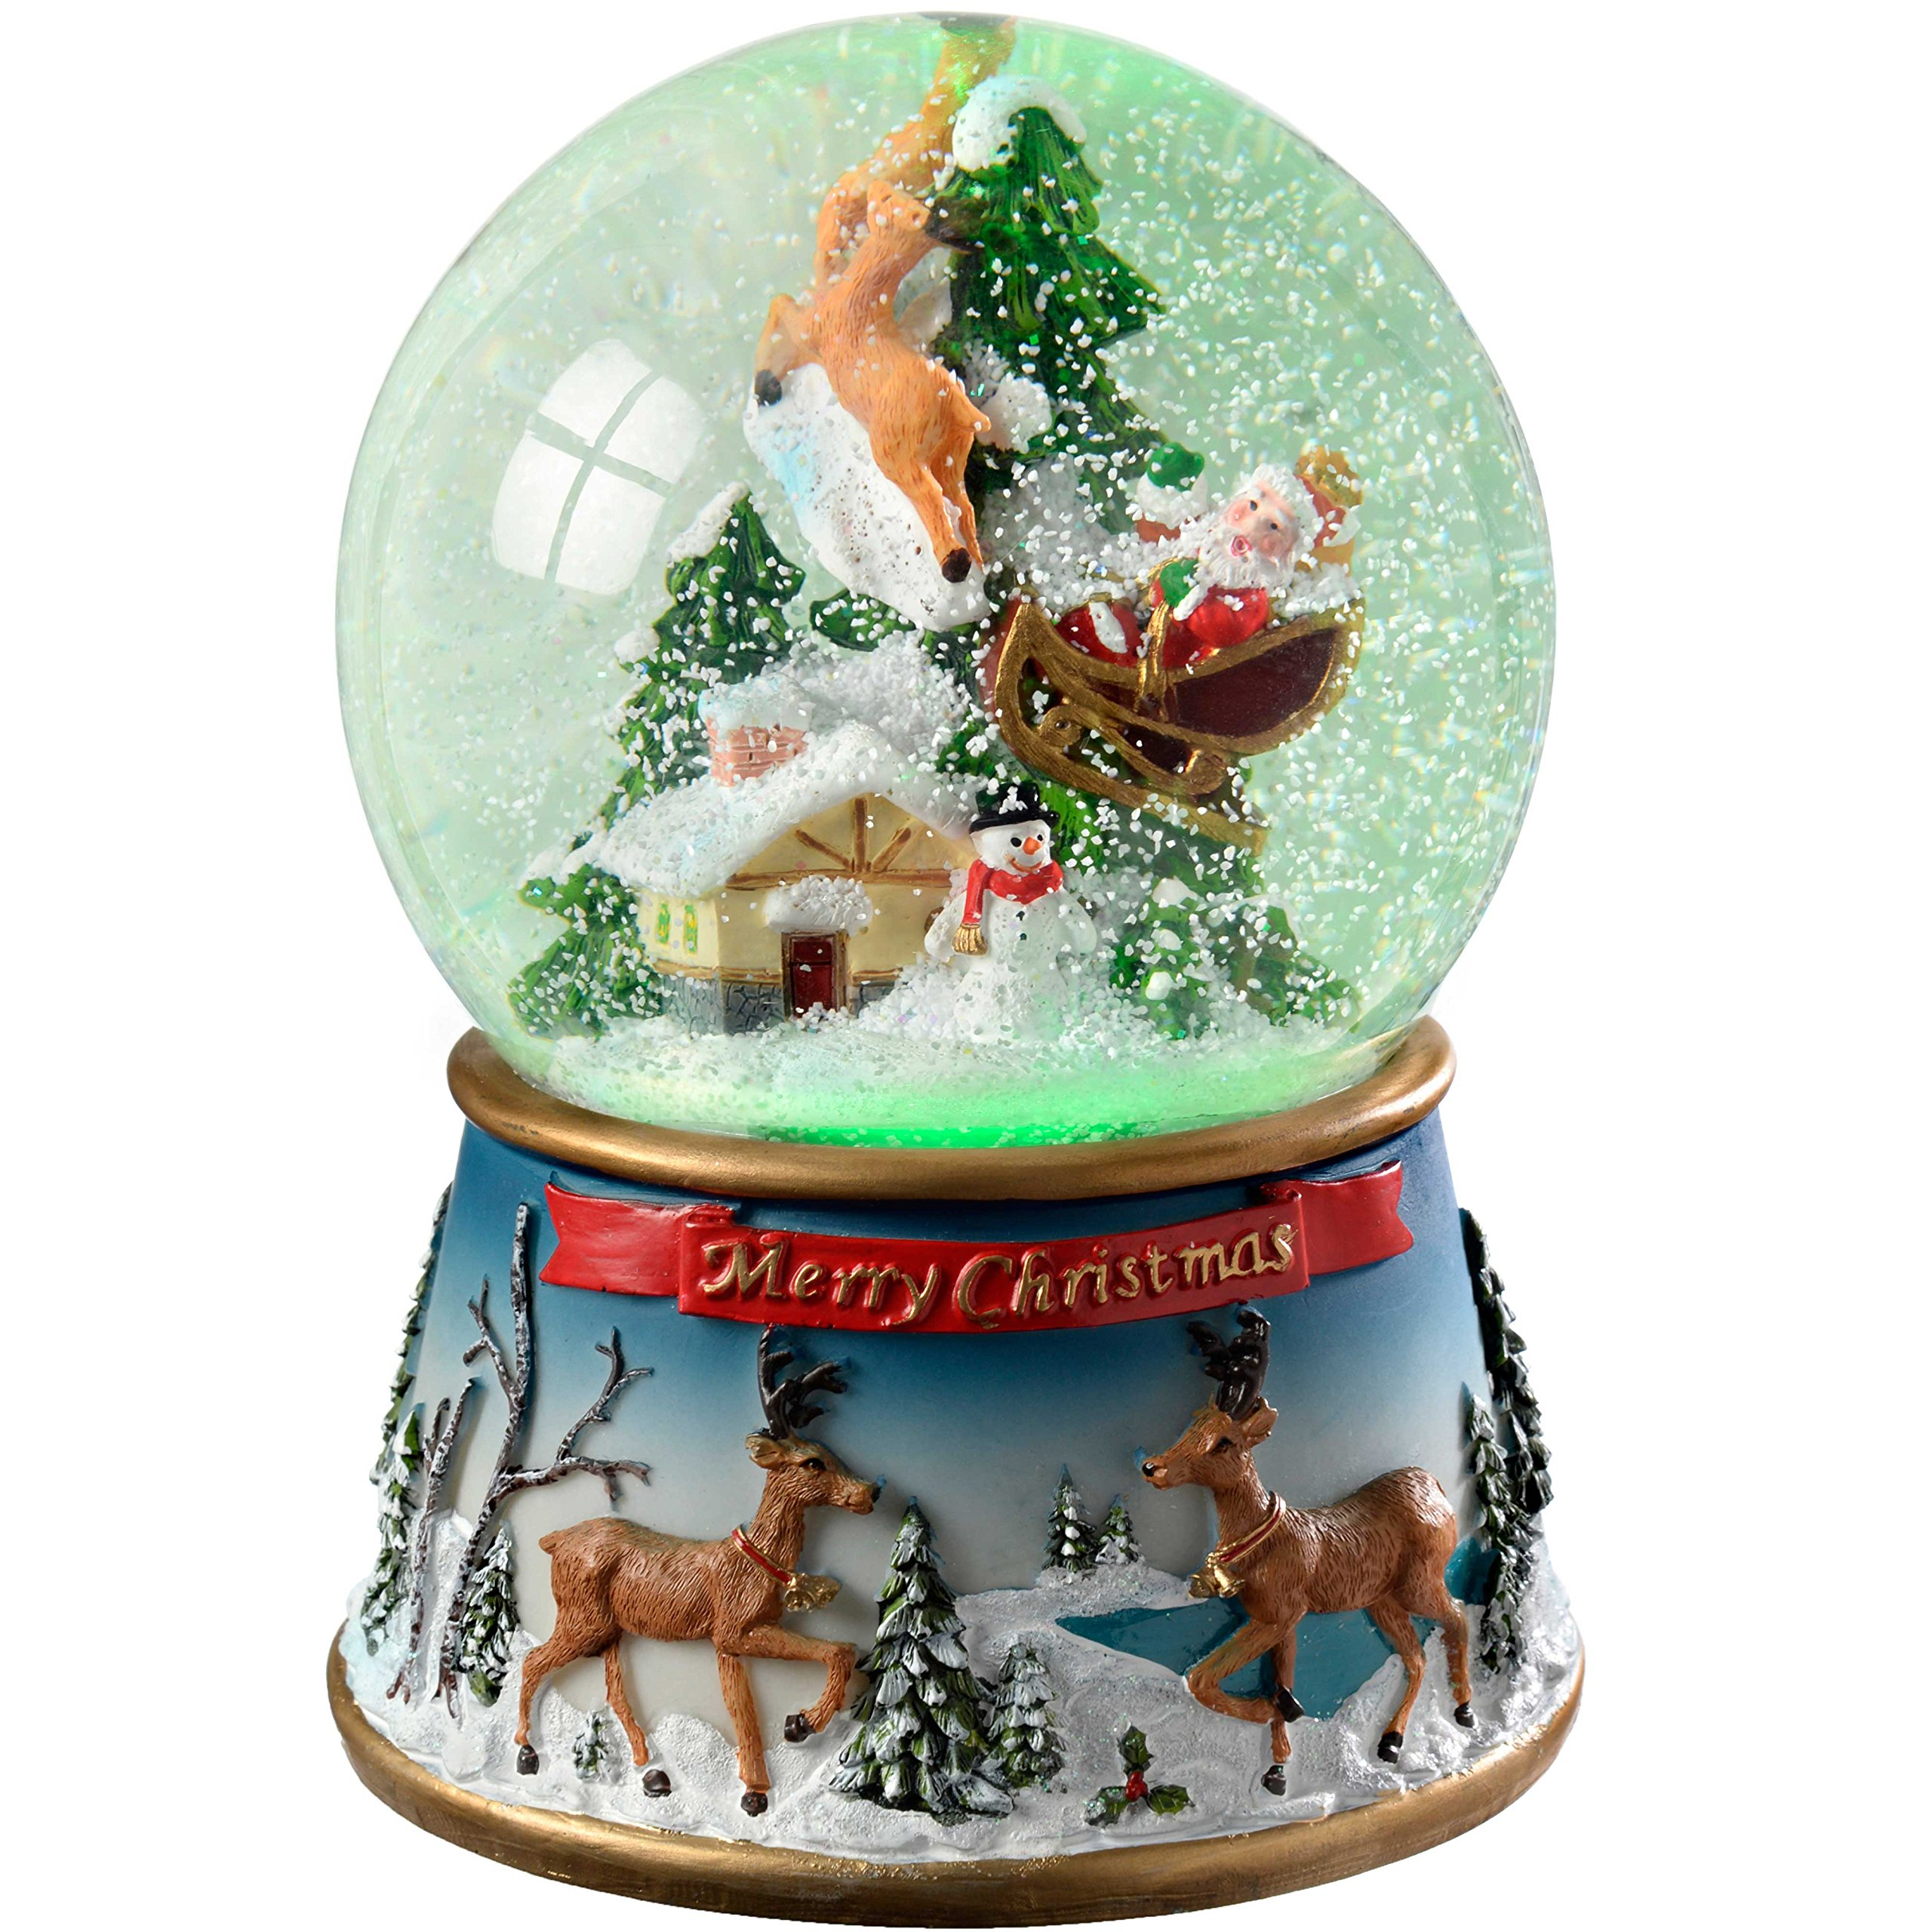 WeRChristmas Santa And Sleigh Colour Changing Snow Globe, 19.5 Cm - Multi-Colour